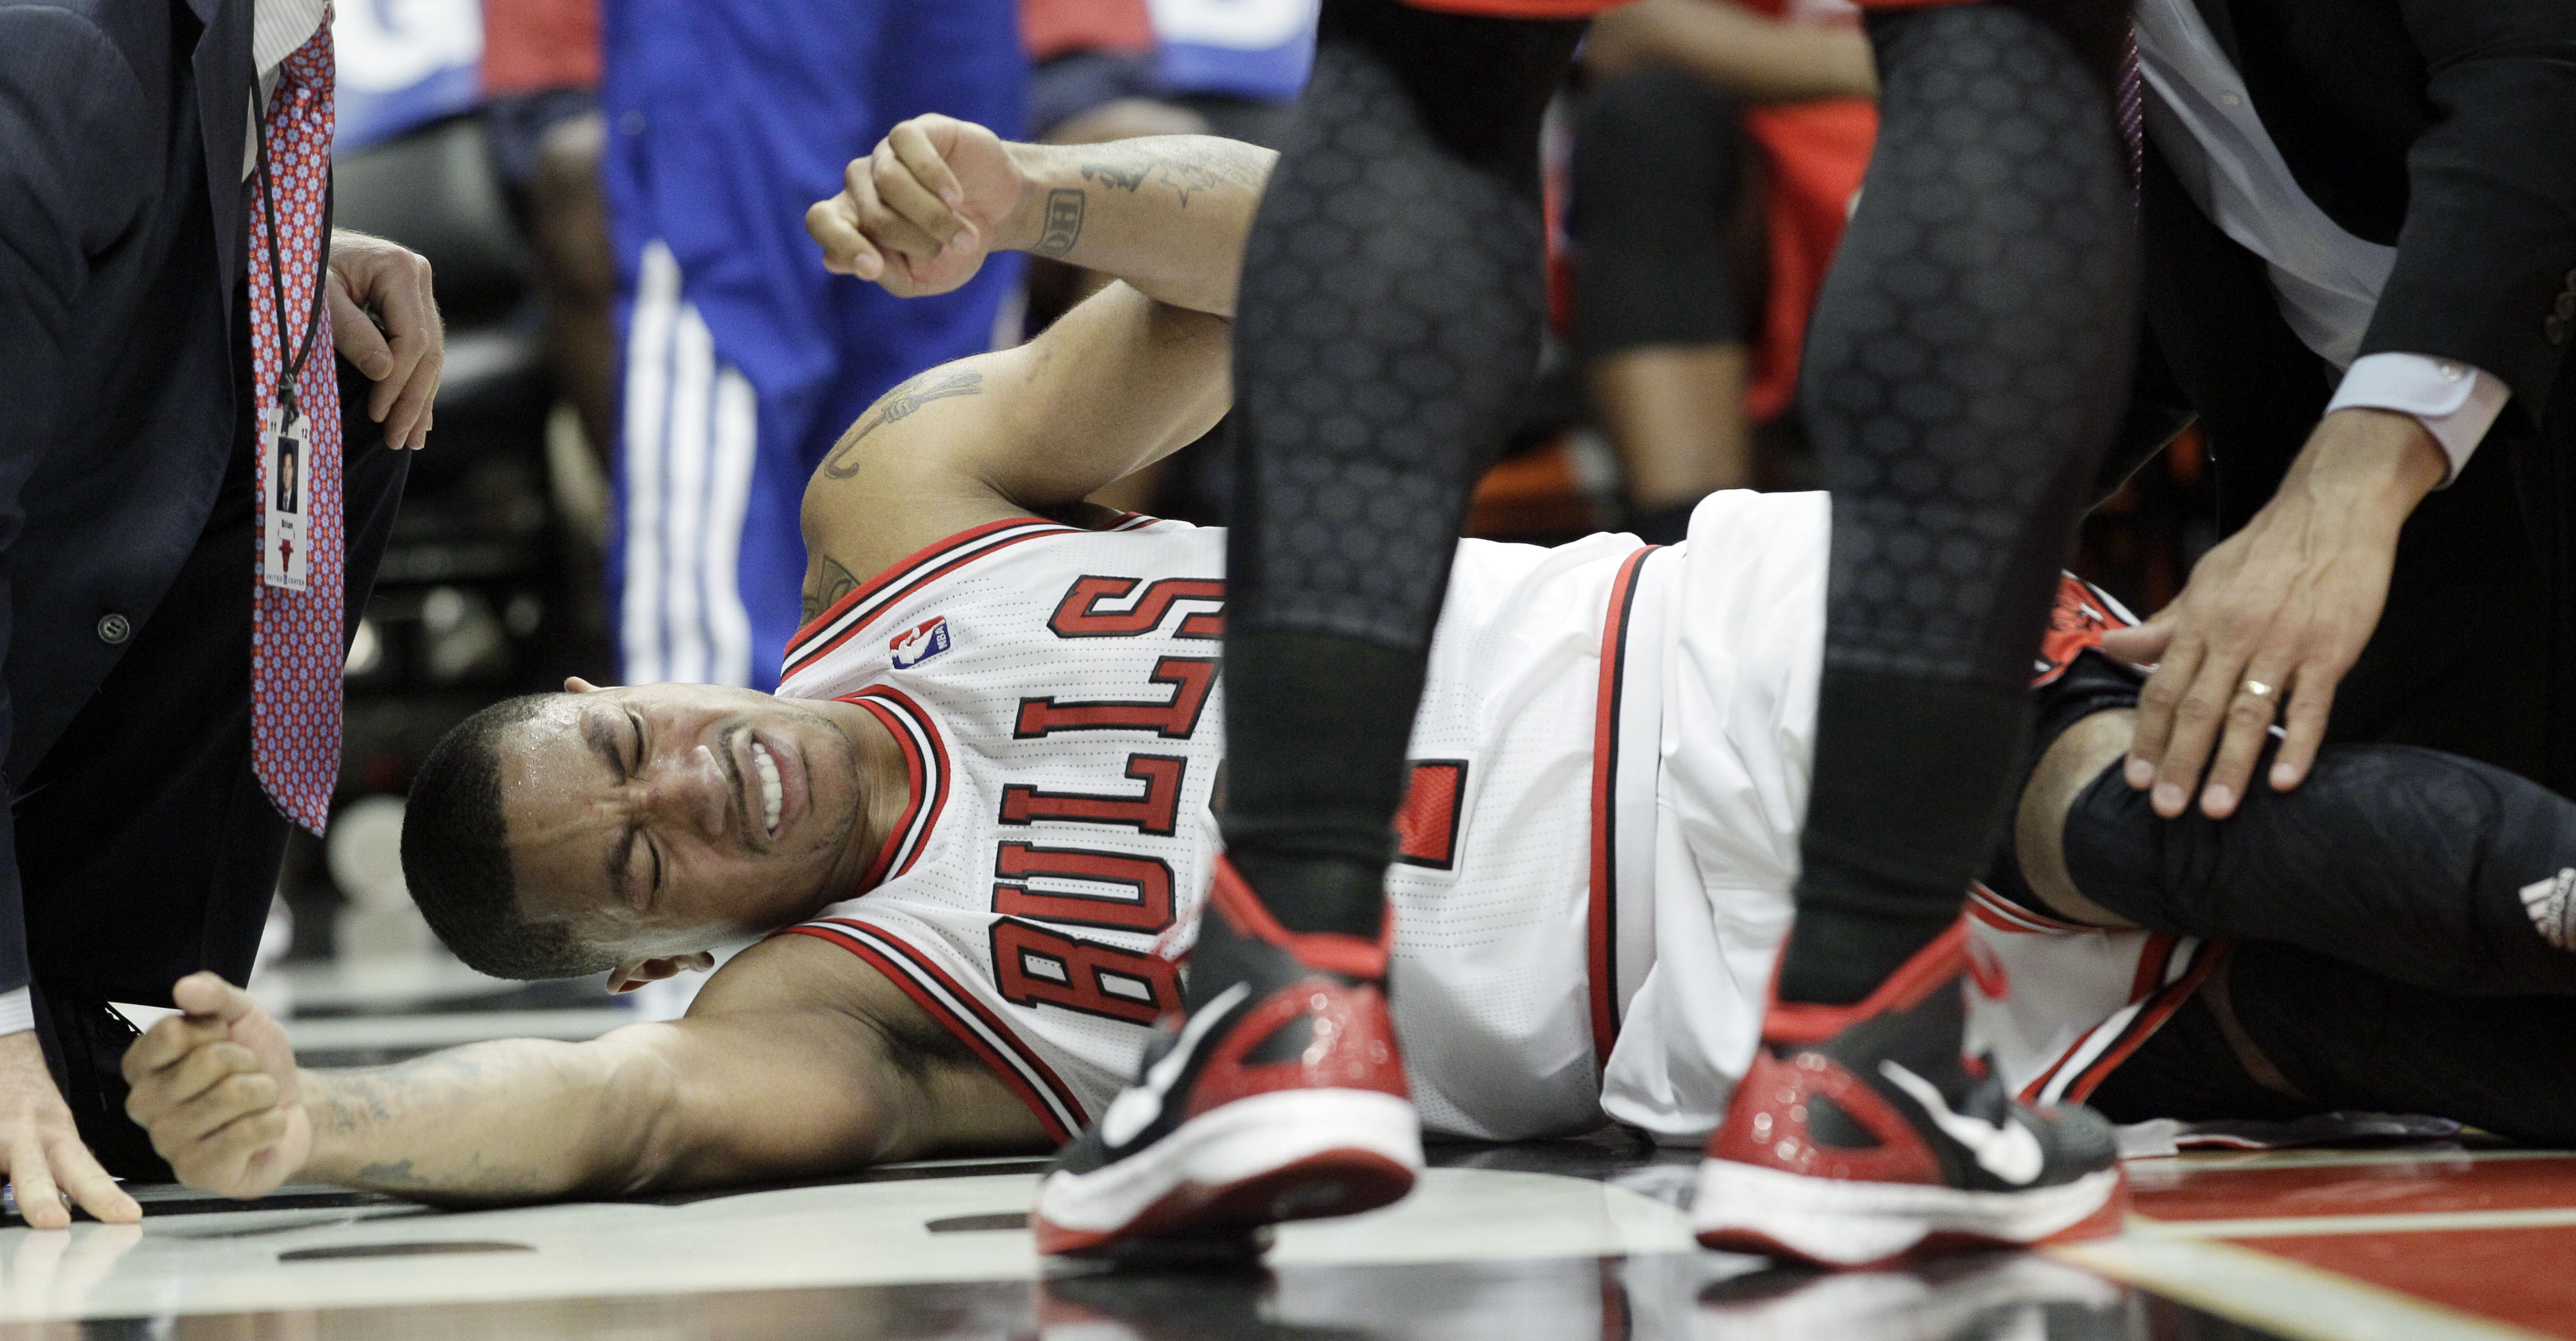 Latest injury to Rose could be blow to Adidas, too